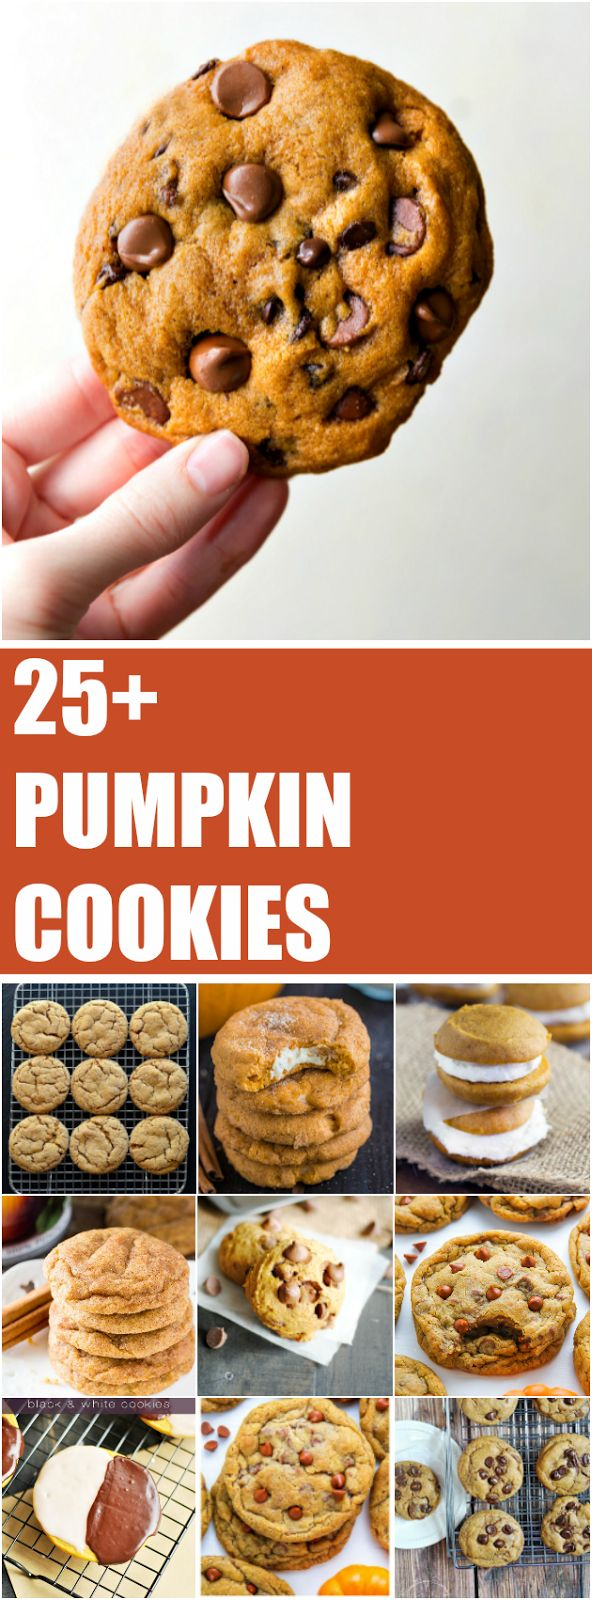 25+ Recipes for Pumpkin Cookies http://www.keatseats.com/2017/08/25-recipes-for-pumpkin-cookies.html?utm_campaign=coschedule&utm_source=pinterest&utm_medium=Keat%27s%20Eats&utm_content=25%2B%20Recipes%20for%20Pumpkin%20Cookies